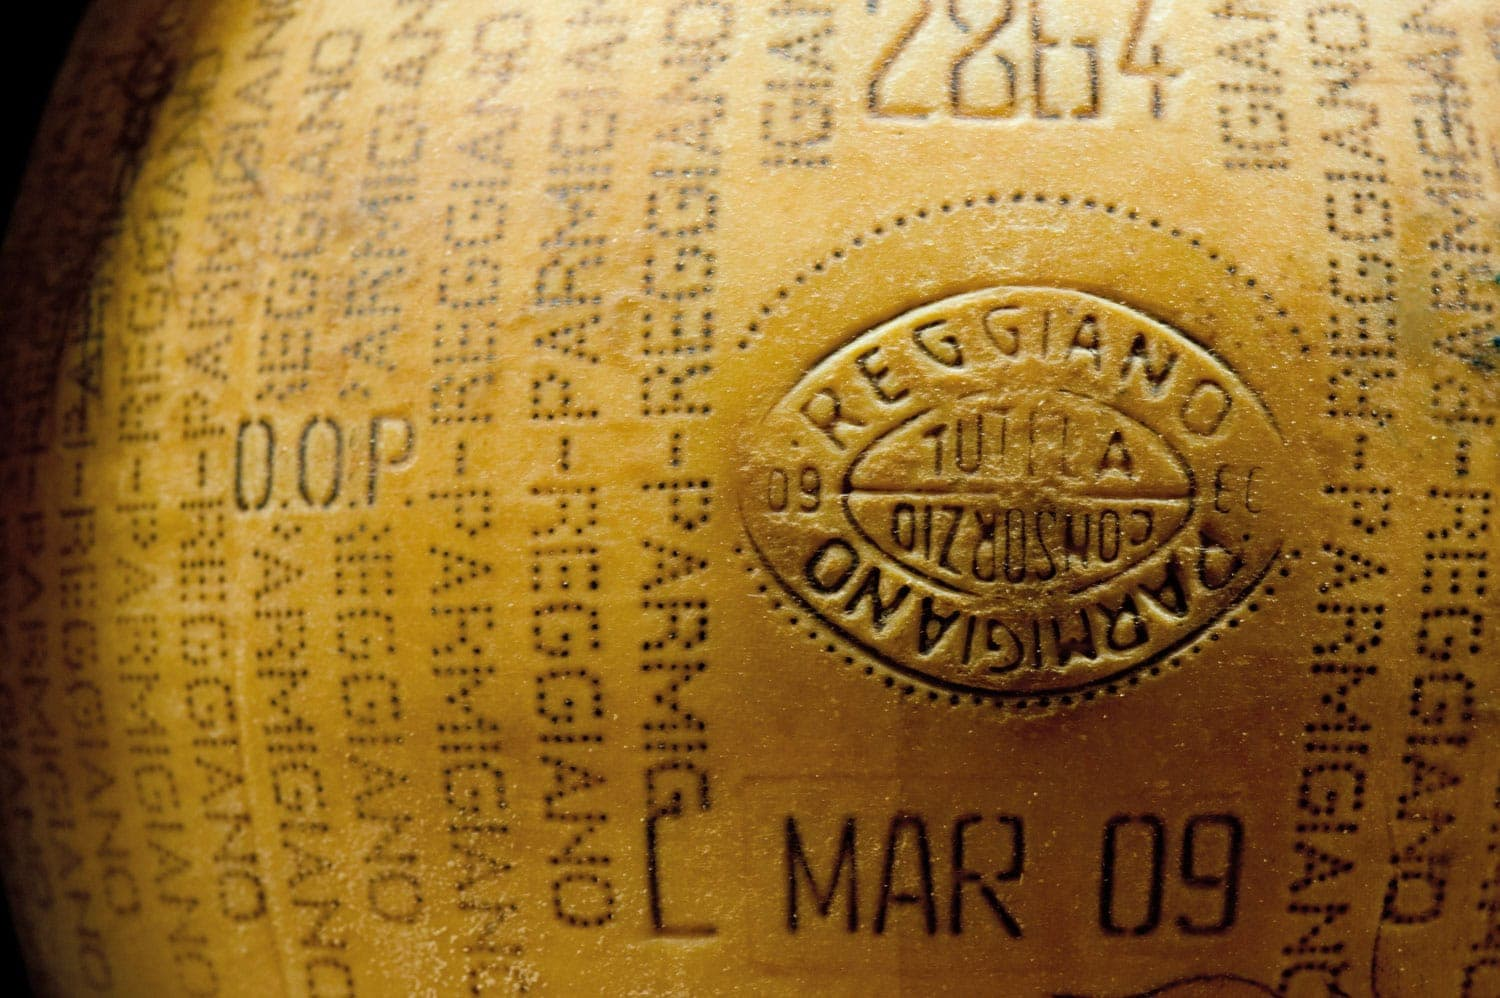 Original Parmigiano Reggiano Stamped Rind - What is Parmigiano Reggiano